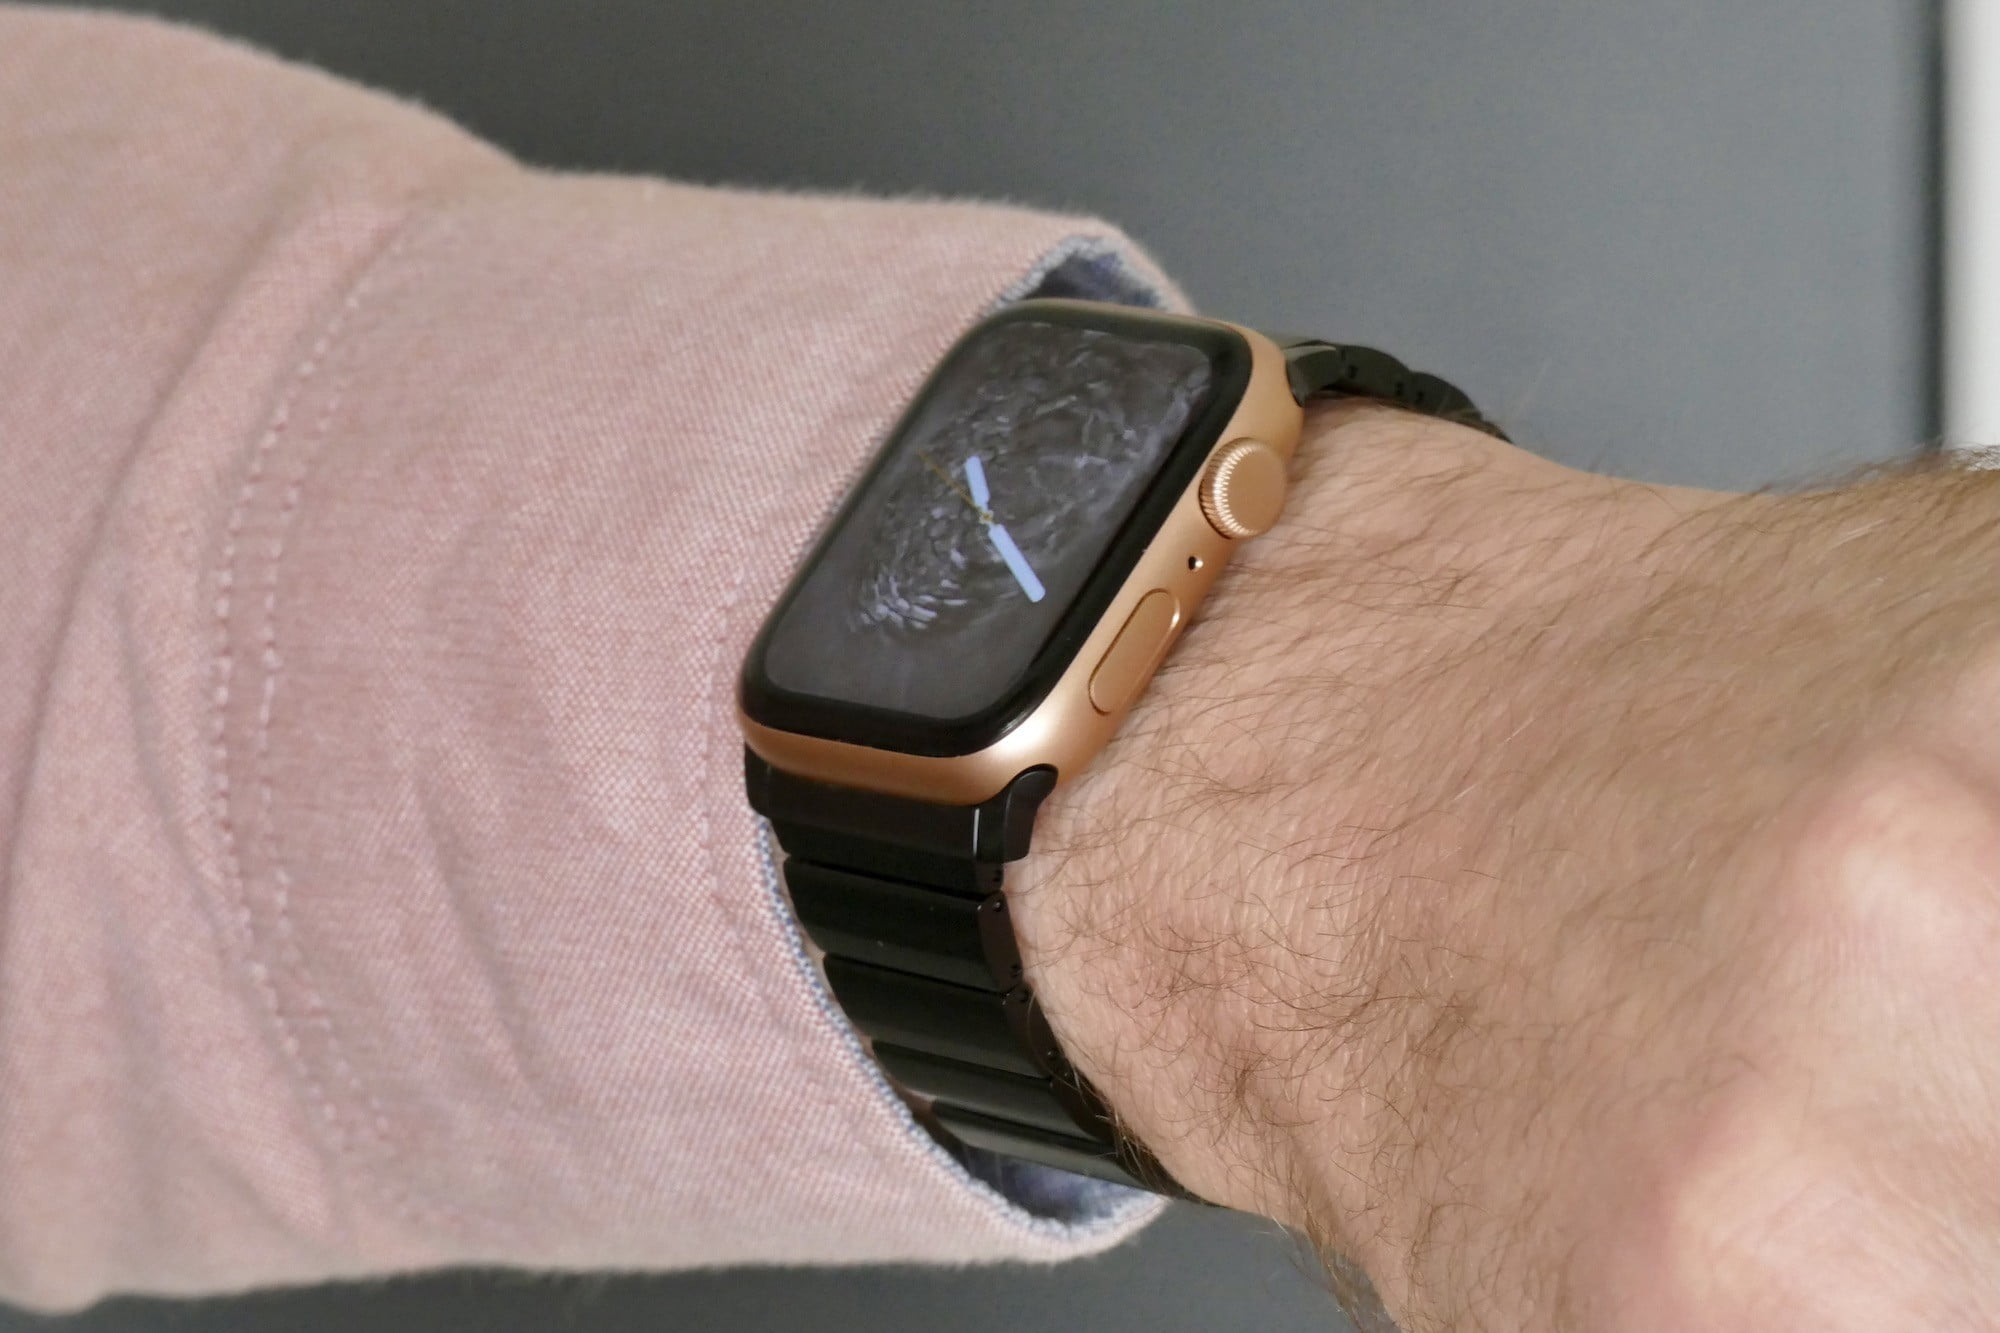 nomad titanium steel band apple watch hands on photos price release date se gold wrist